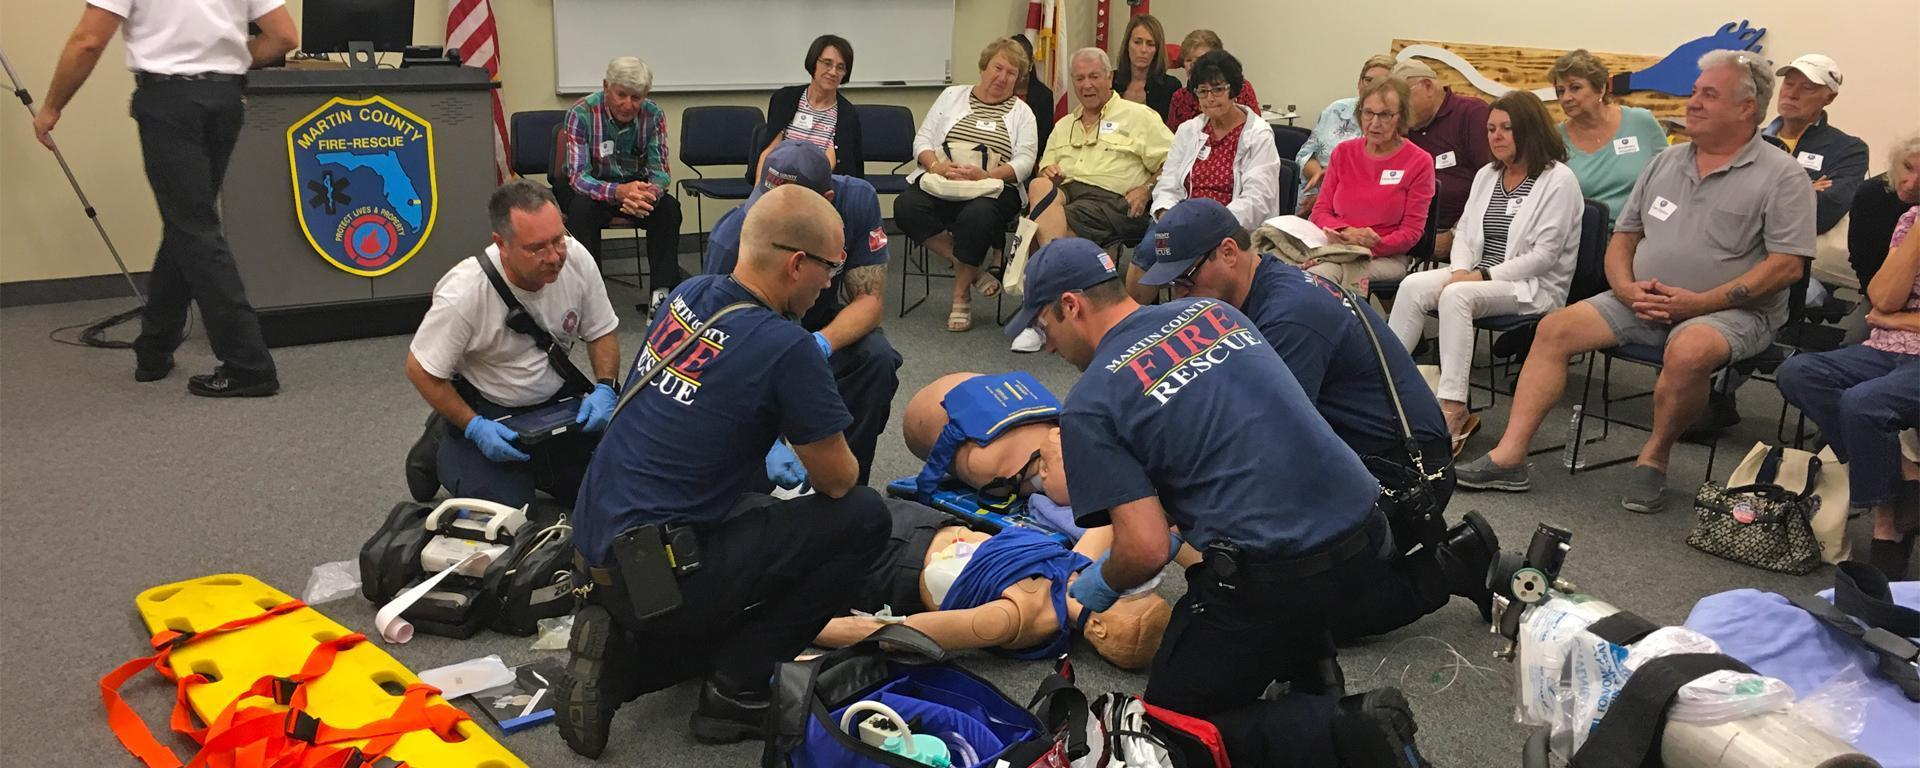 Martin County EMT/Paramedics perform a demostration